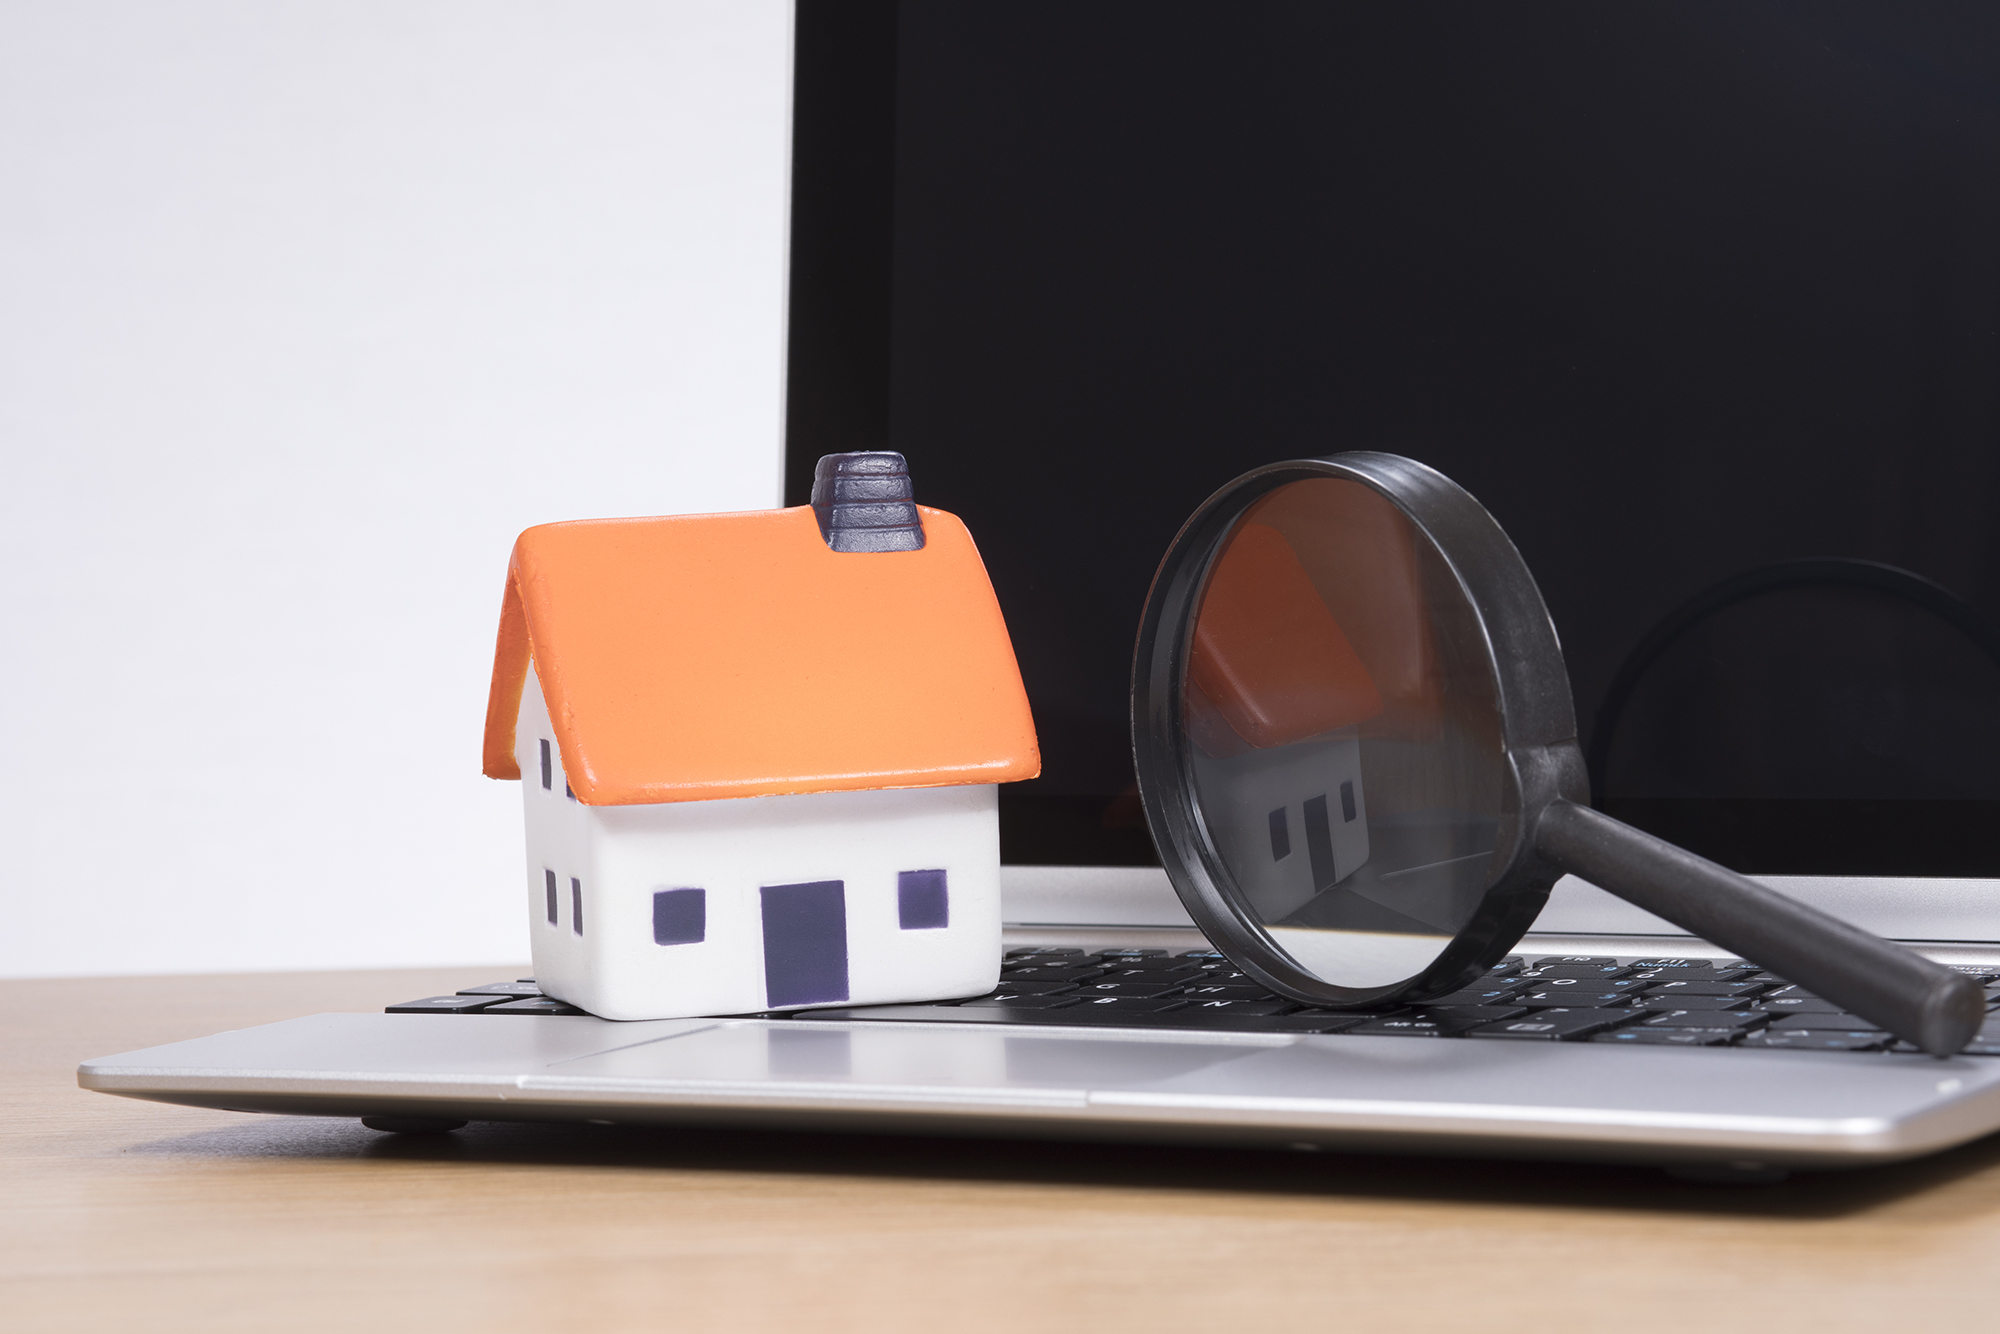 Tiny house model on top of laptop. (Image: Shutterstock)